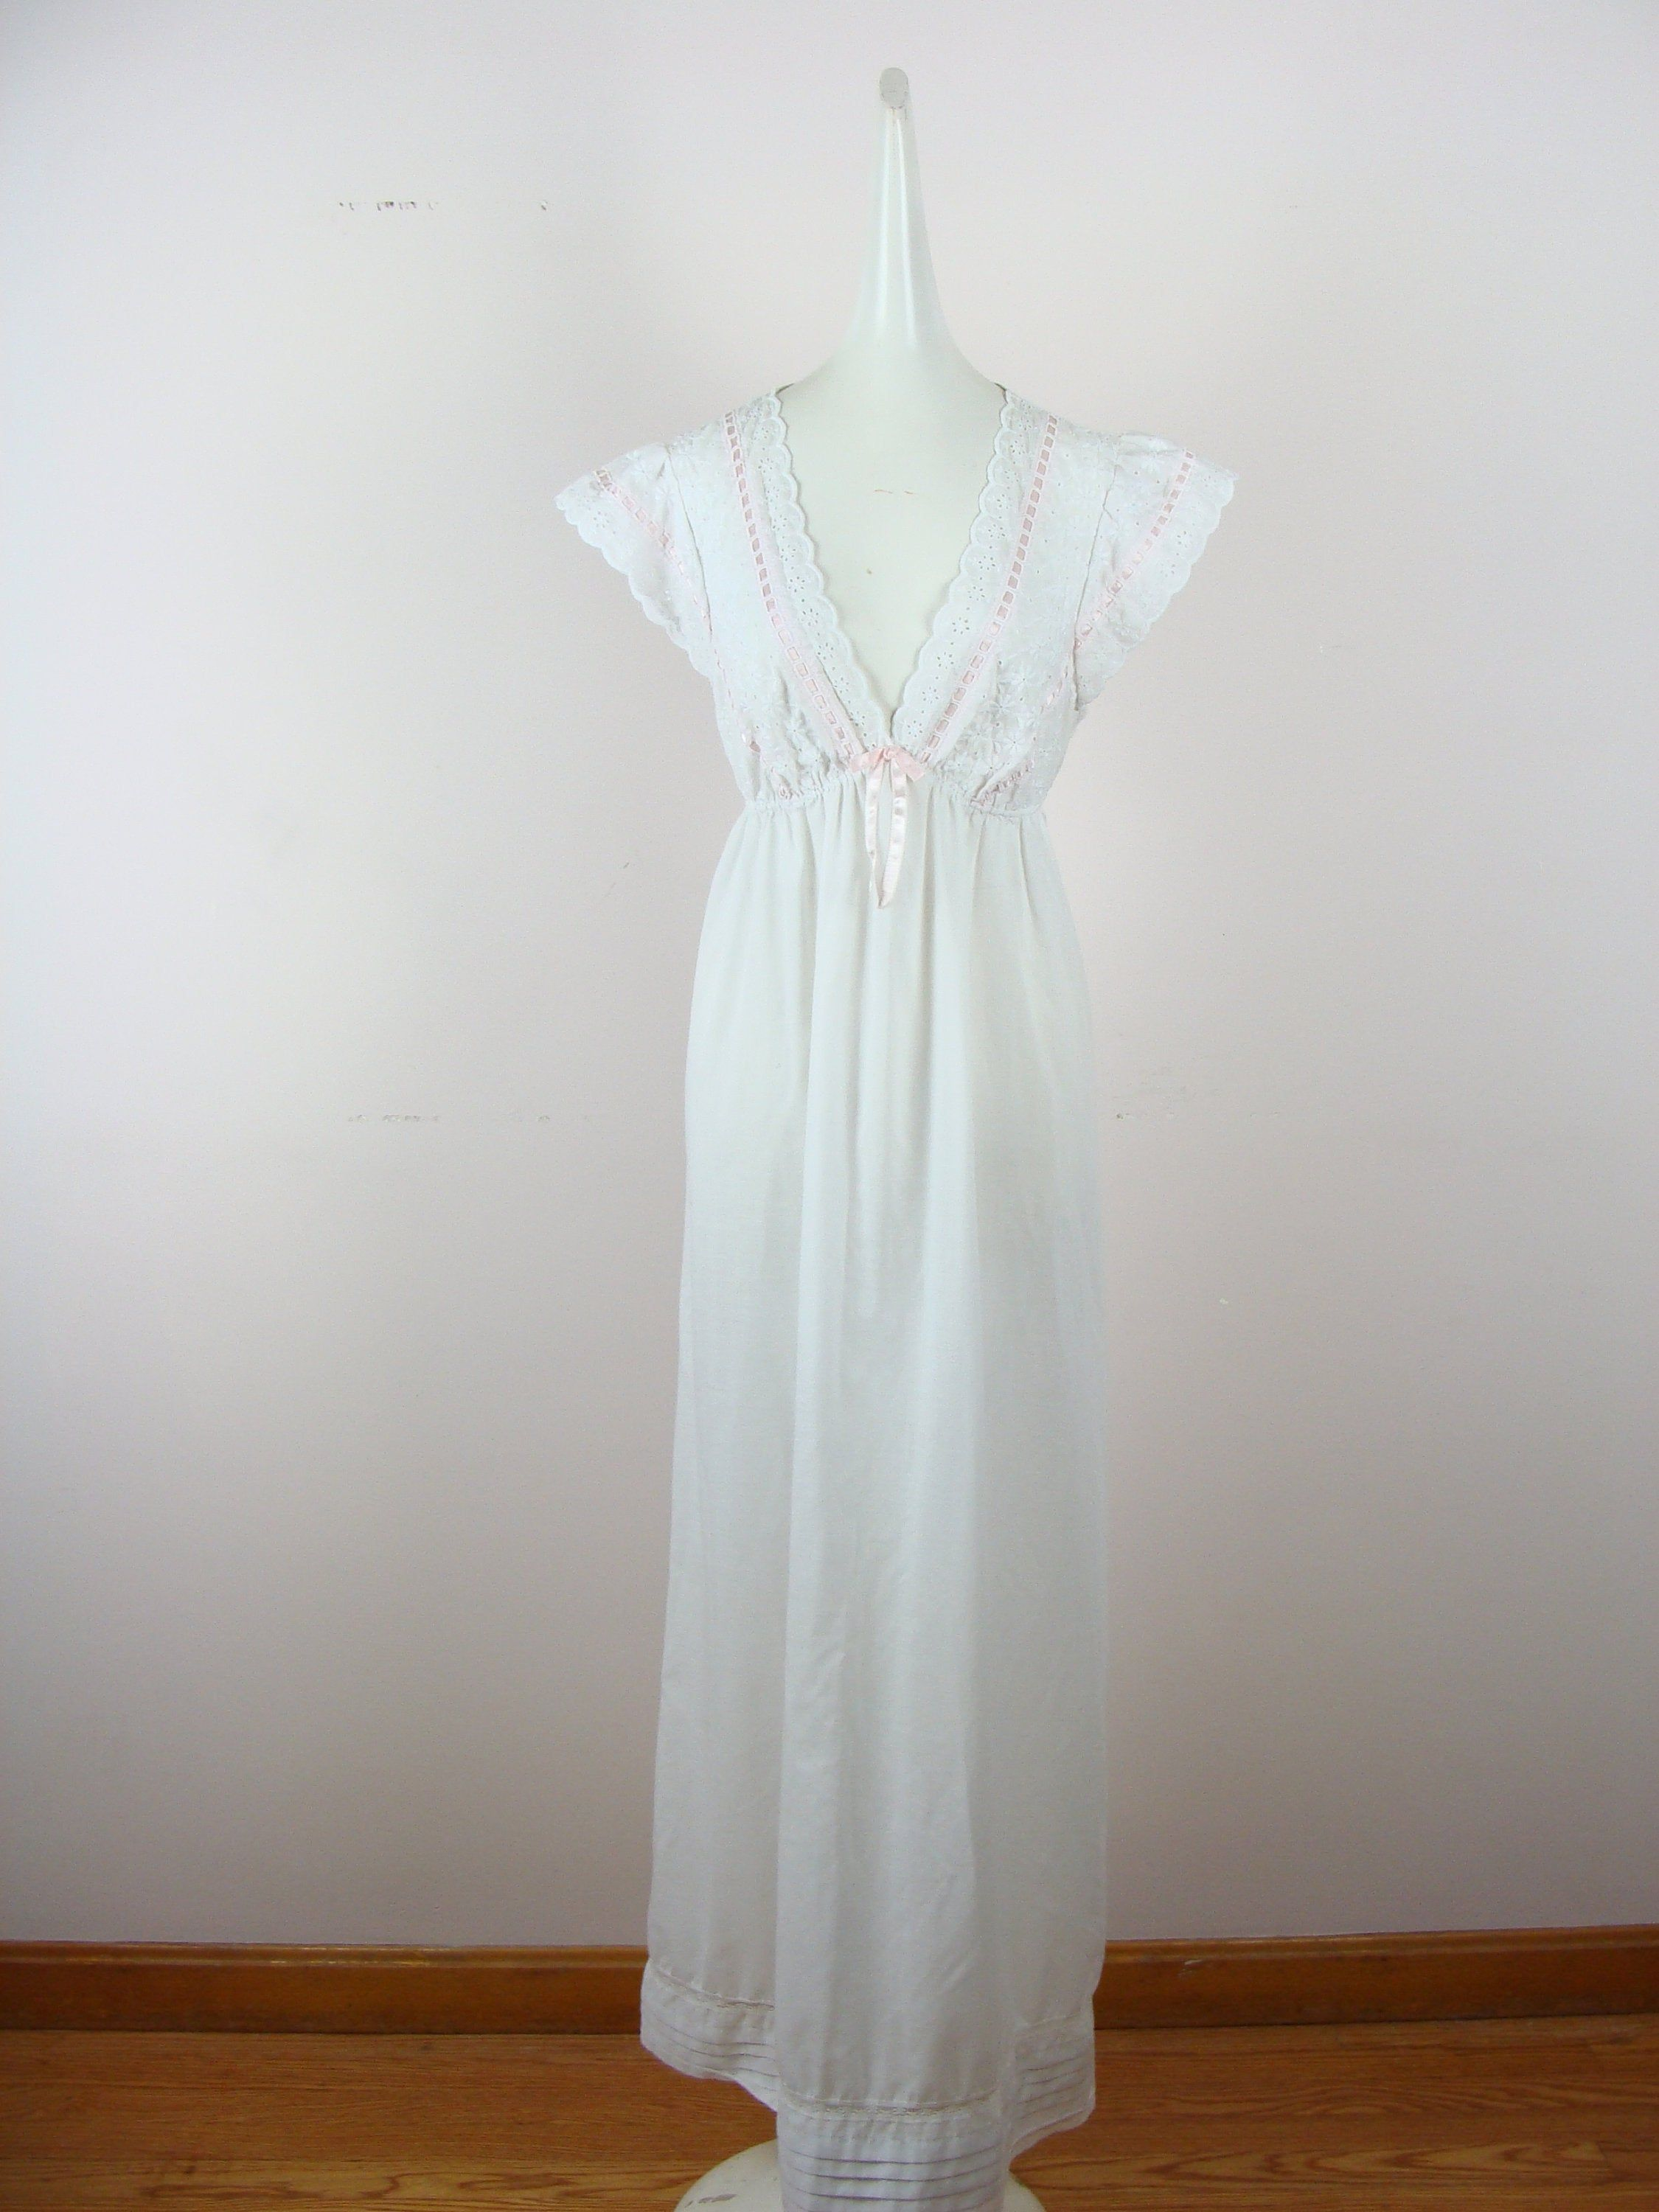 Vintage Nightgown 70s Romantic Flowy Full Length Eyelet Etsy Night Gown Vintage Shift Dress Vintage Nightgown [ 3000 x 2250 Pixel ]